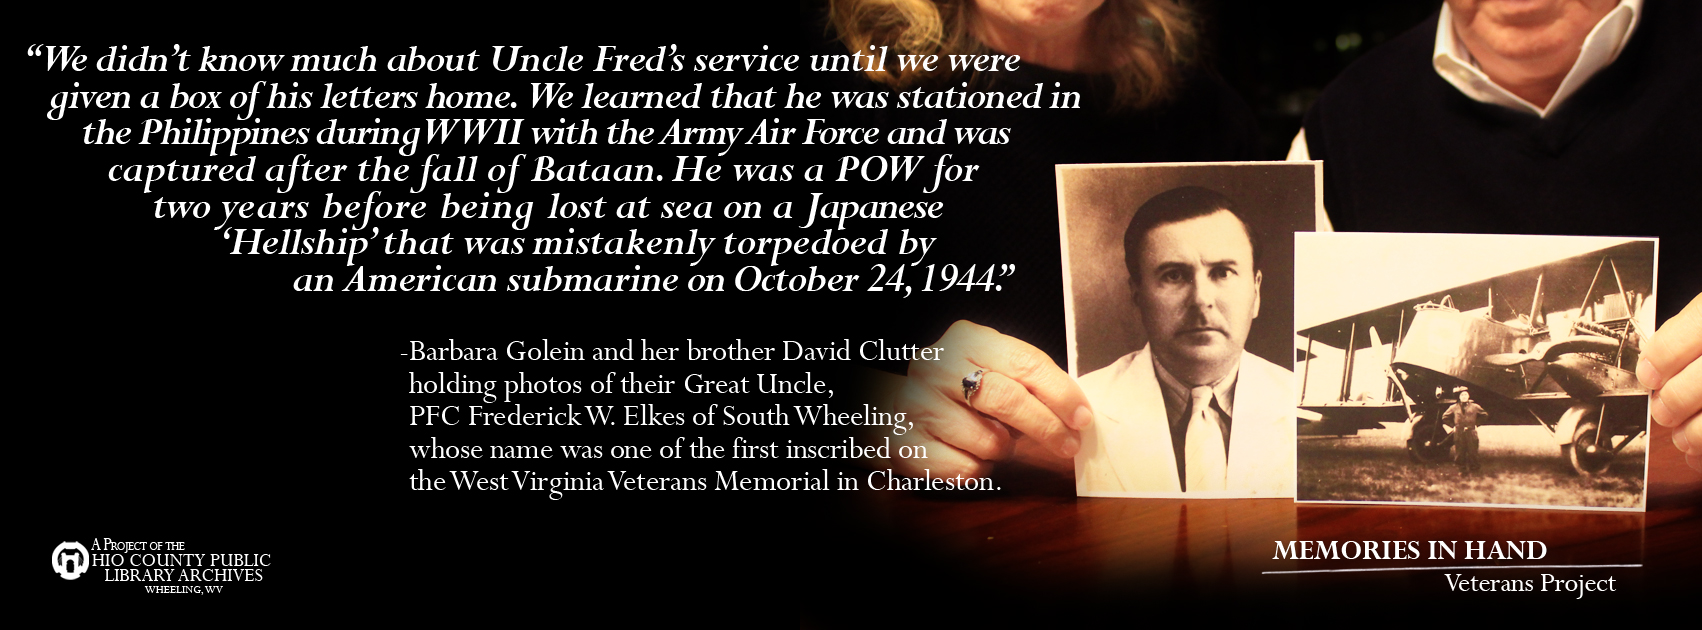 Freddie Elkes, U.S. Army Air Force, World War II